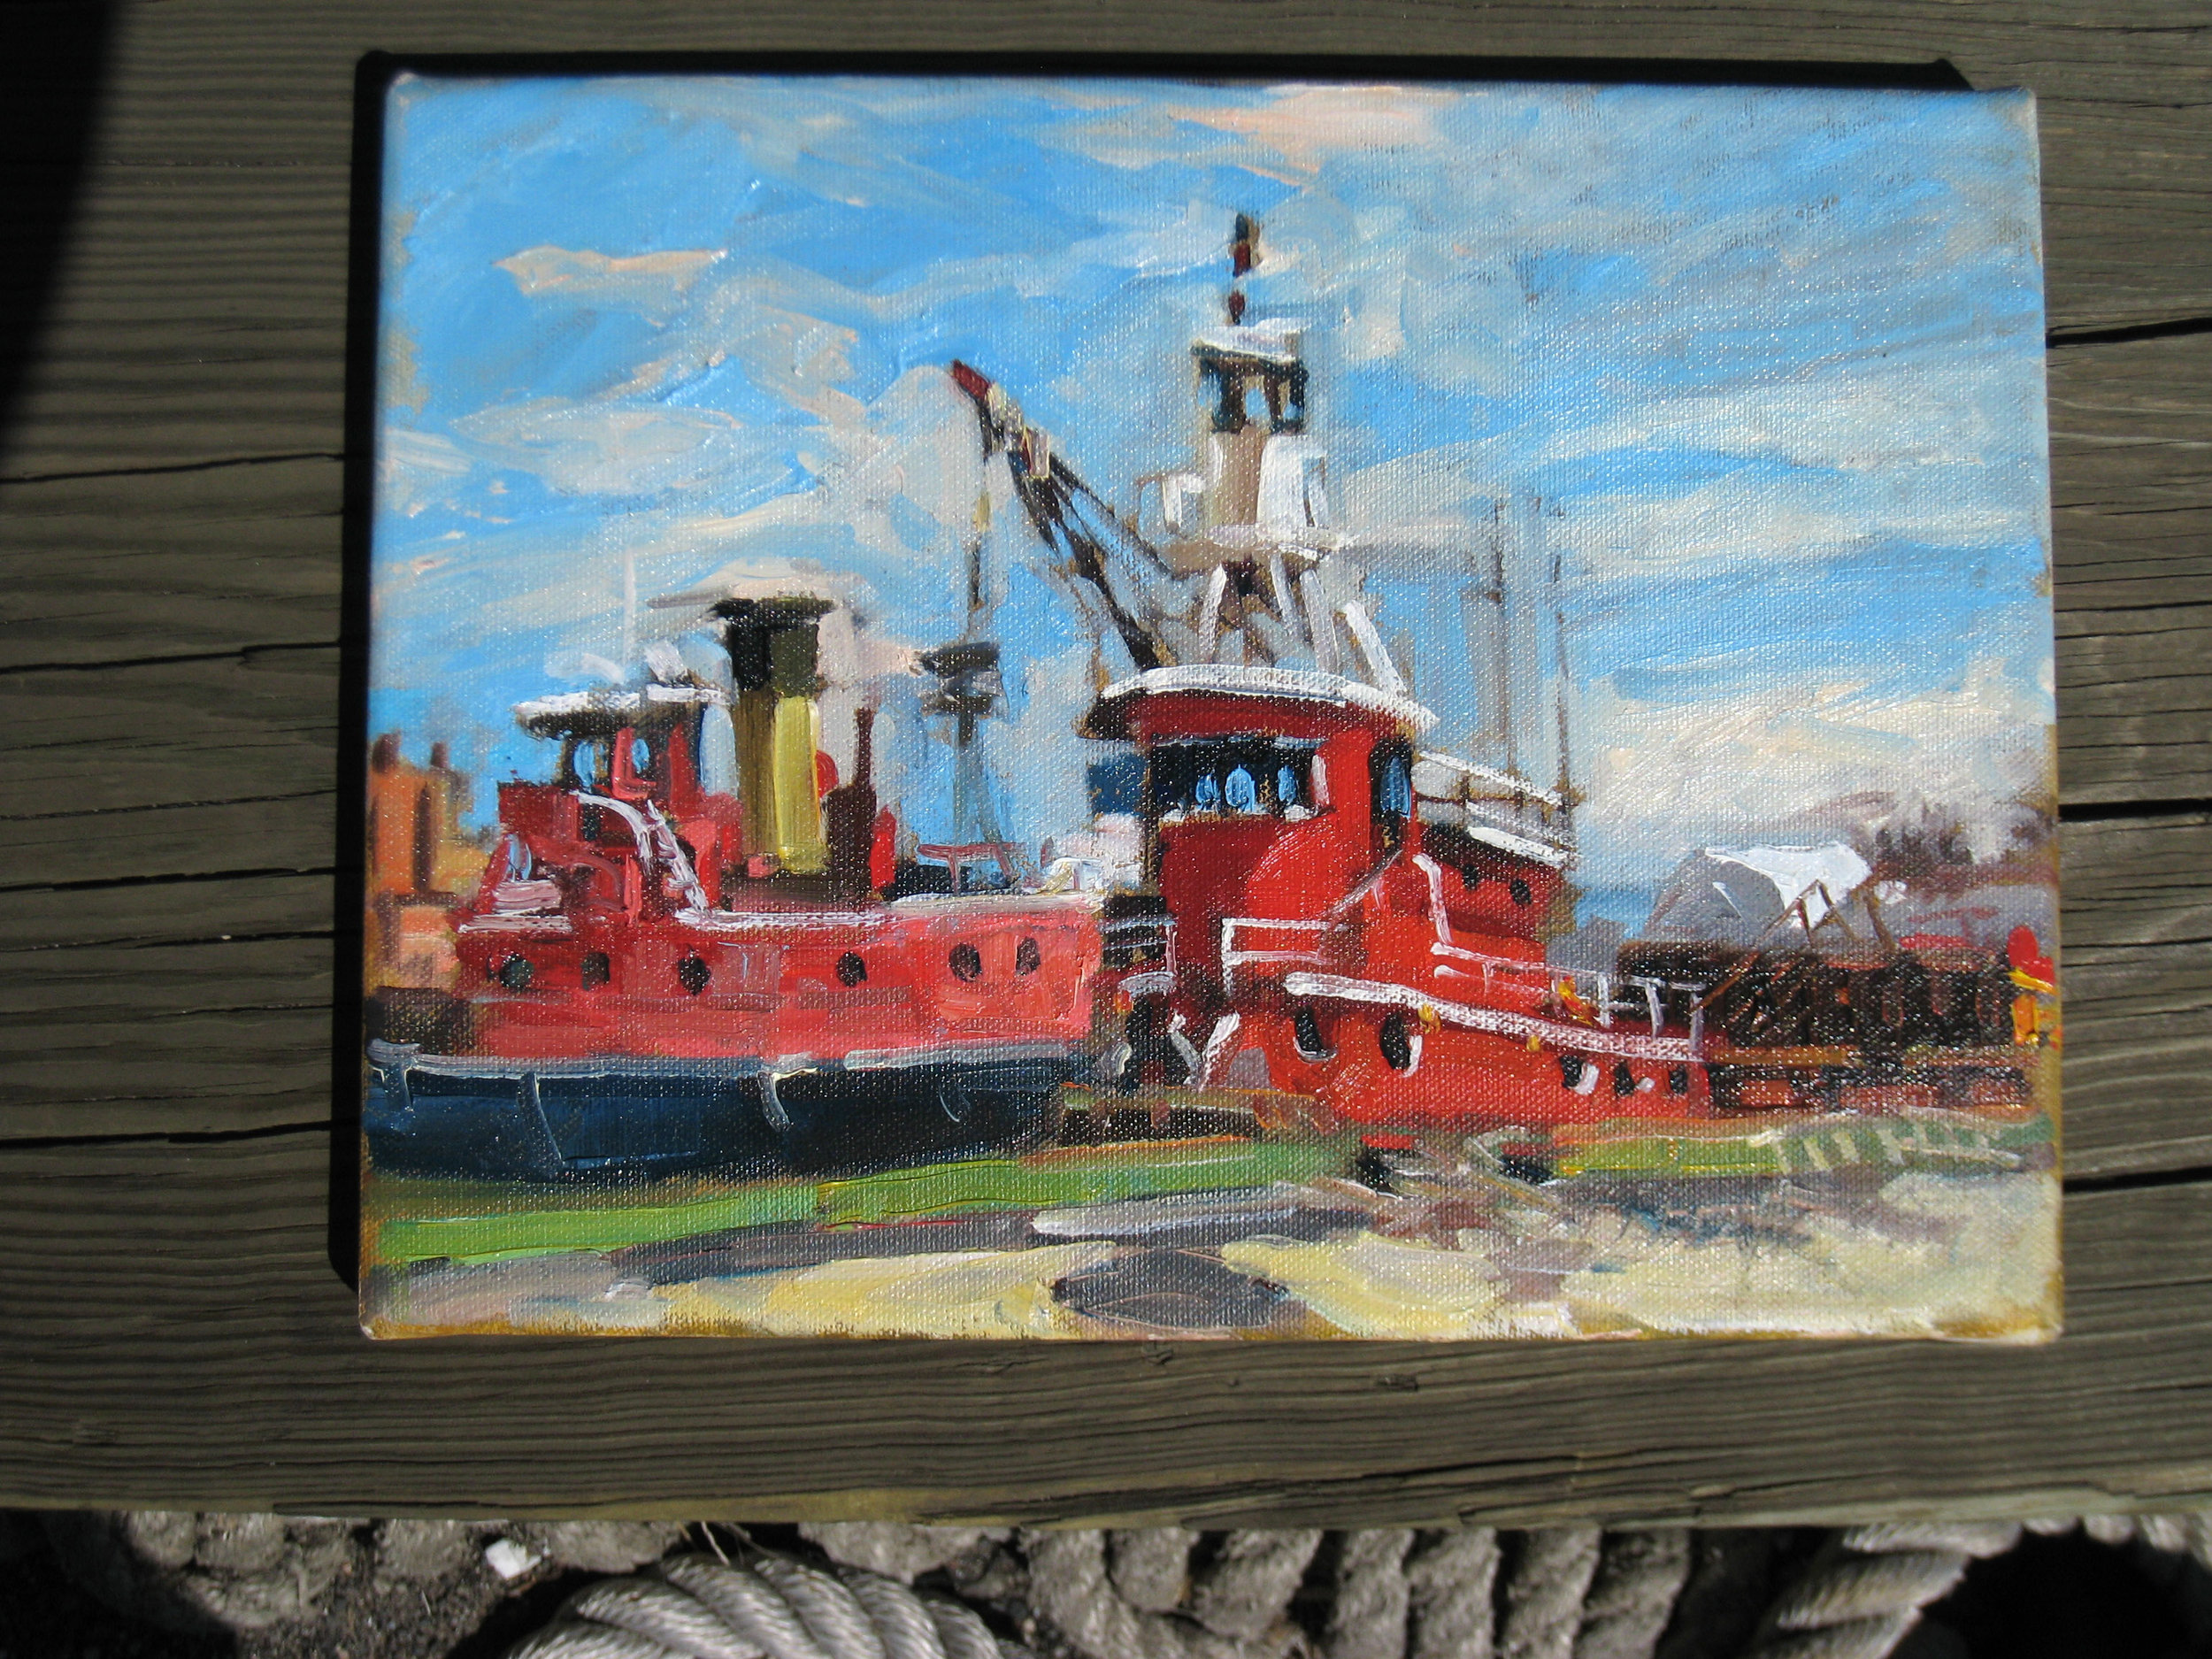 080329-02 Whalen+tug Patrick J Hunt  painting by Dennis Doyle .jpg